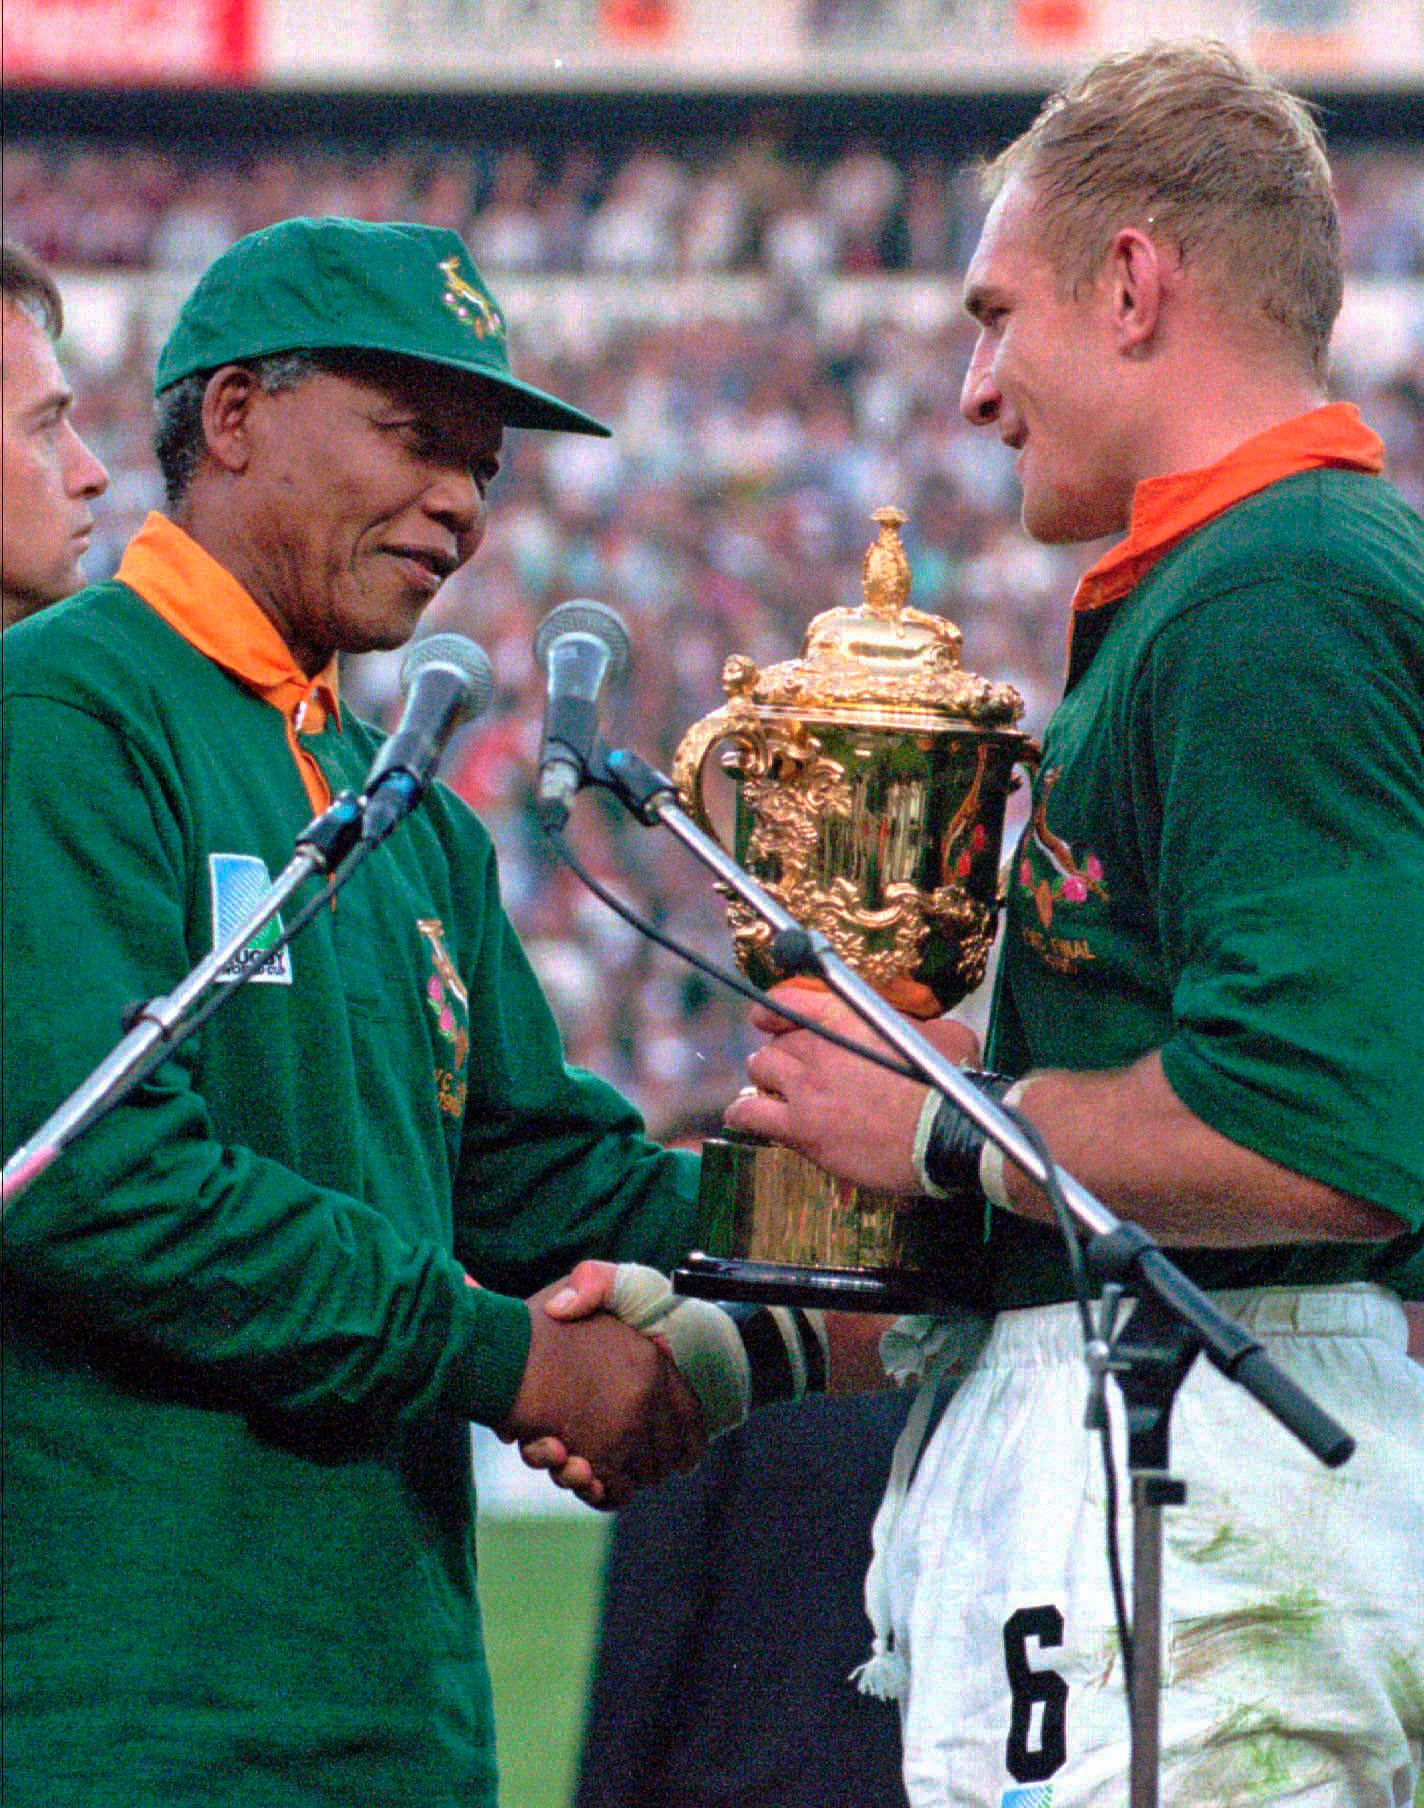 Photos: Nelson Mandela and South Africa's 1995 Rugby World Cup Win | Time